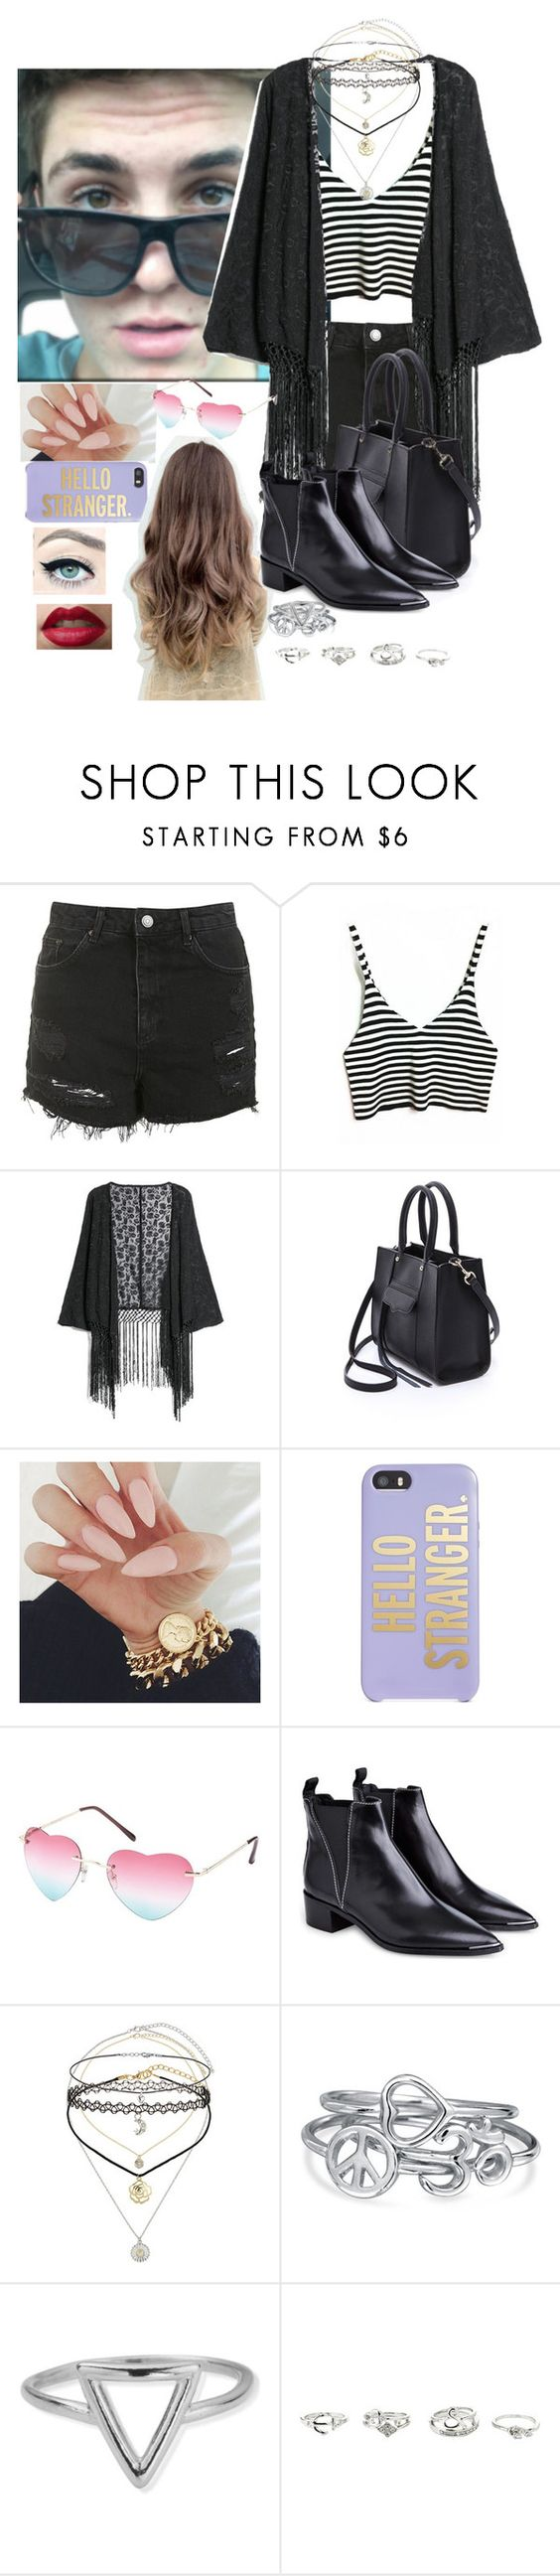 """Movies with Sammy"" by sherifagrier ❤ liked on Polyvore featuring Topshop, MANGO, Rebecca Minkoff, Kate Spade, Charlotte Russe, Acne Studios, Miss Selfridge, Bling Jewelry and ChloBo"